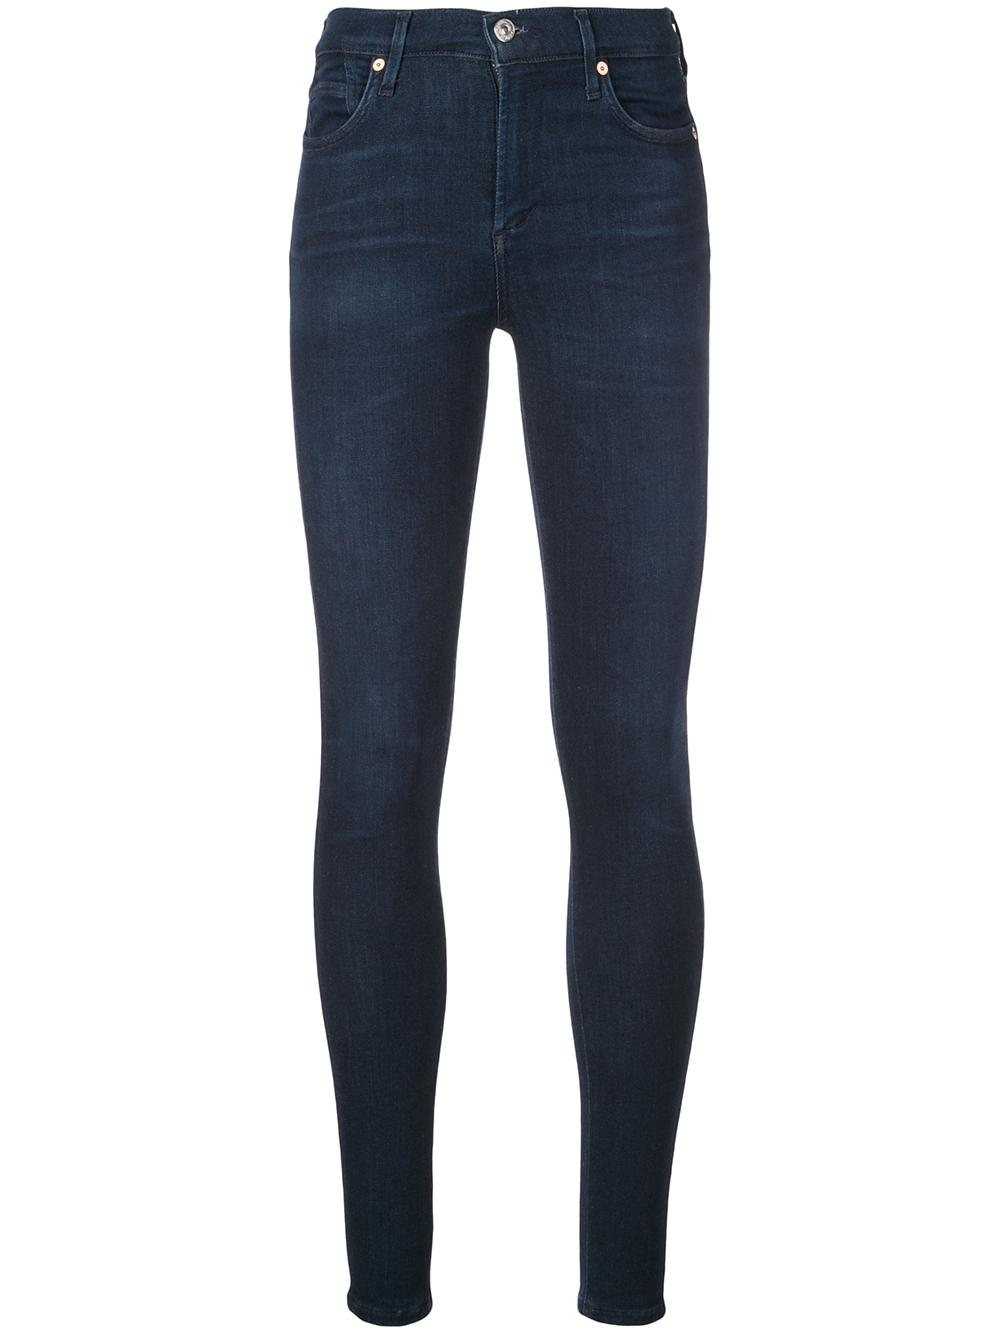 Rocket Full Length Mid Rise Skinny